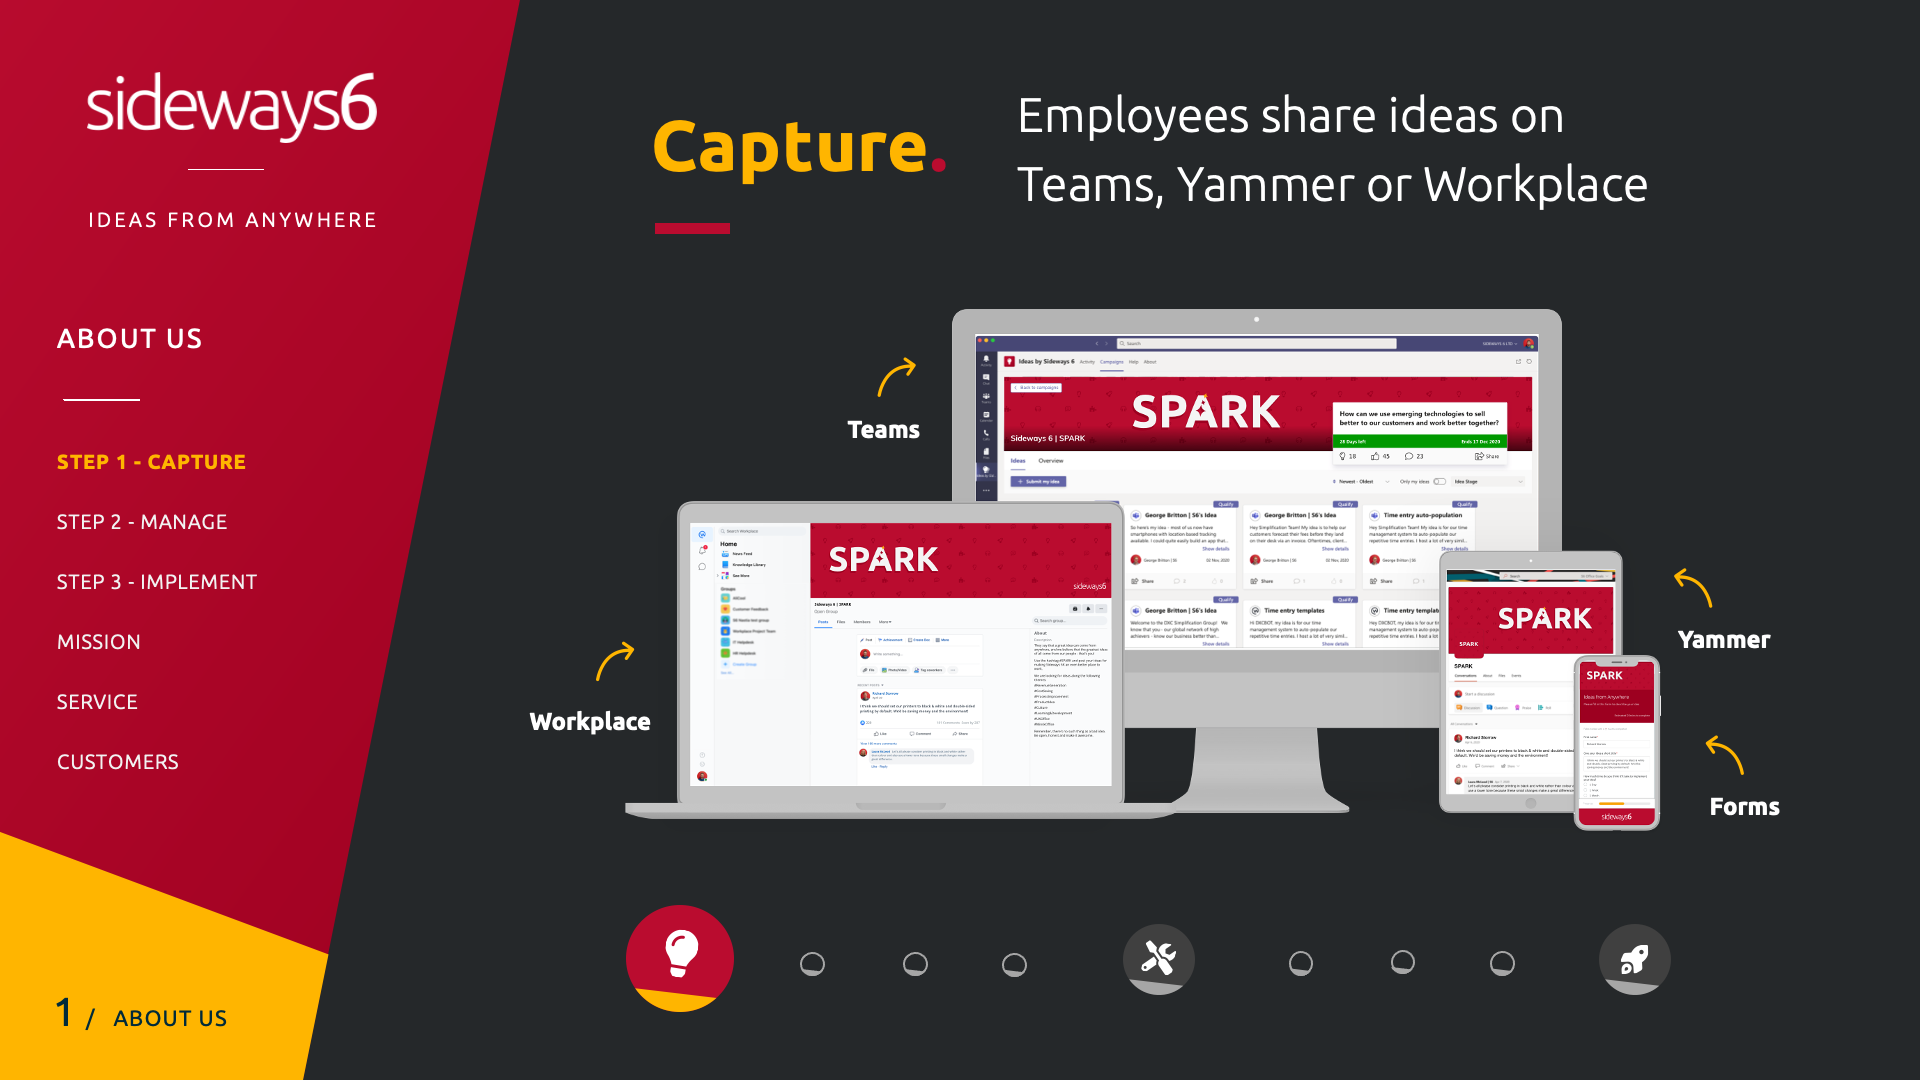 Sideways 6 screenshot: Step 1 - Capture - Employees share ideas on Yeams, Yammer or Workplace from Facebook